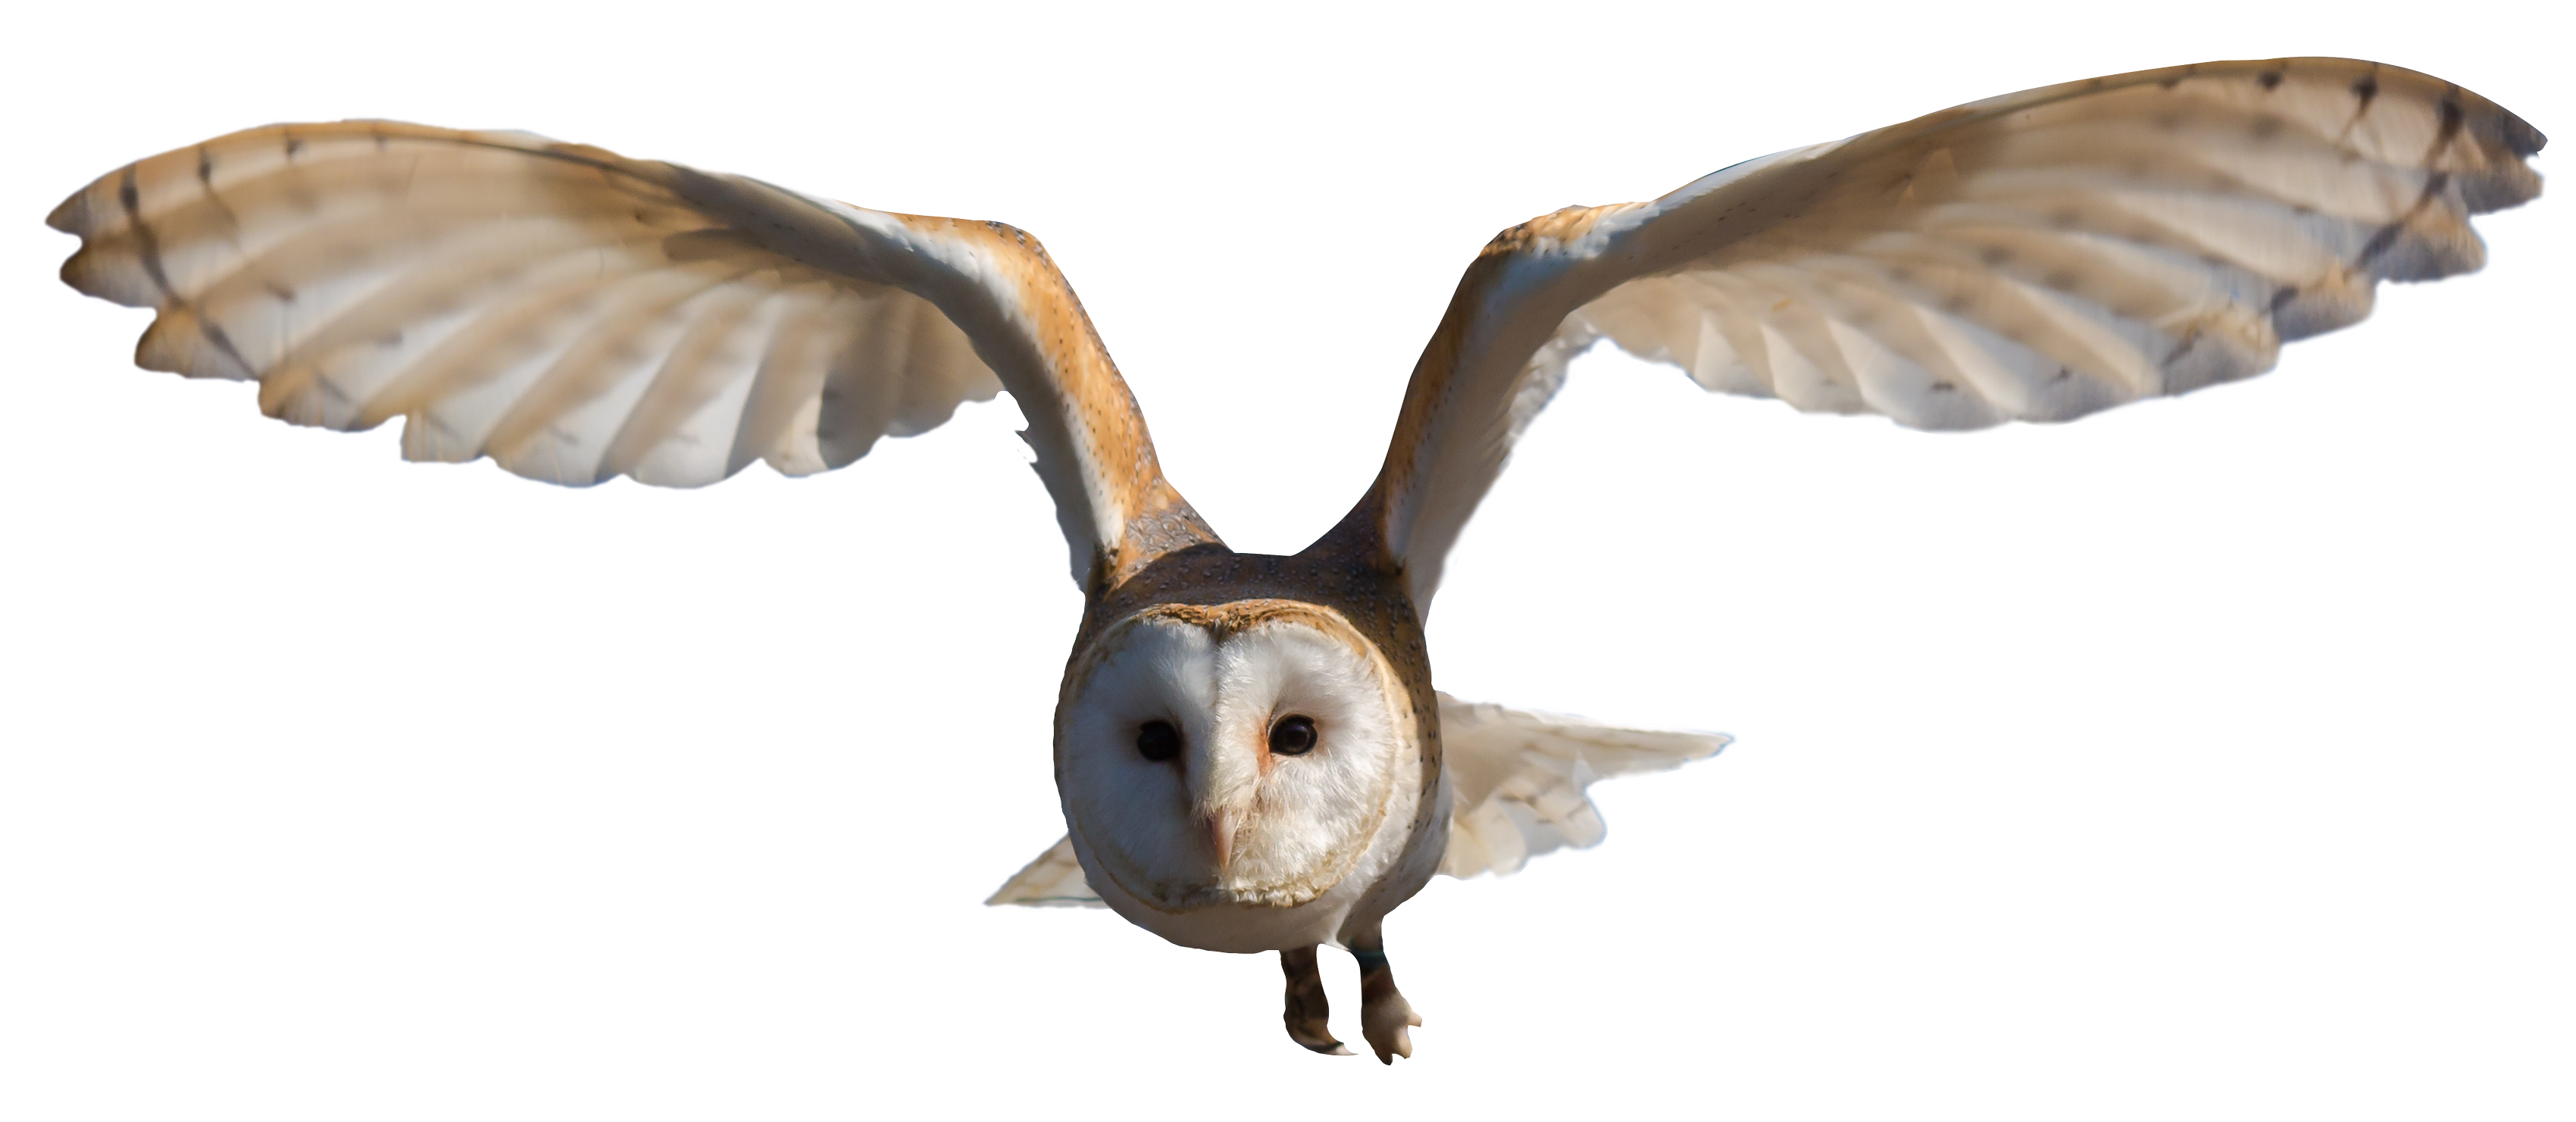 Clipart barn transparent background. Snowy owl free on